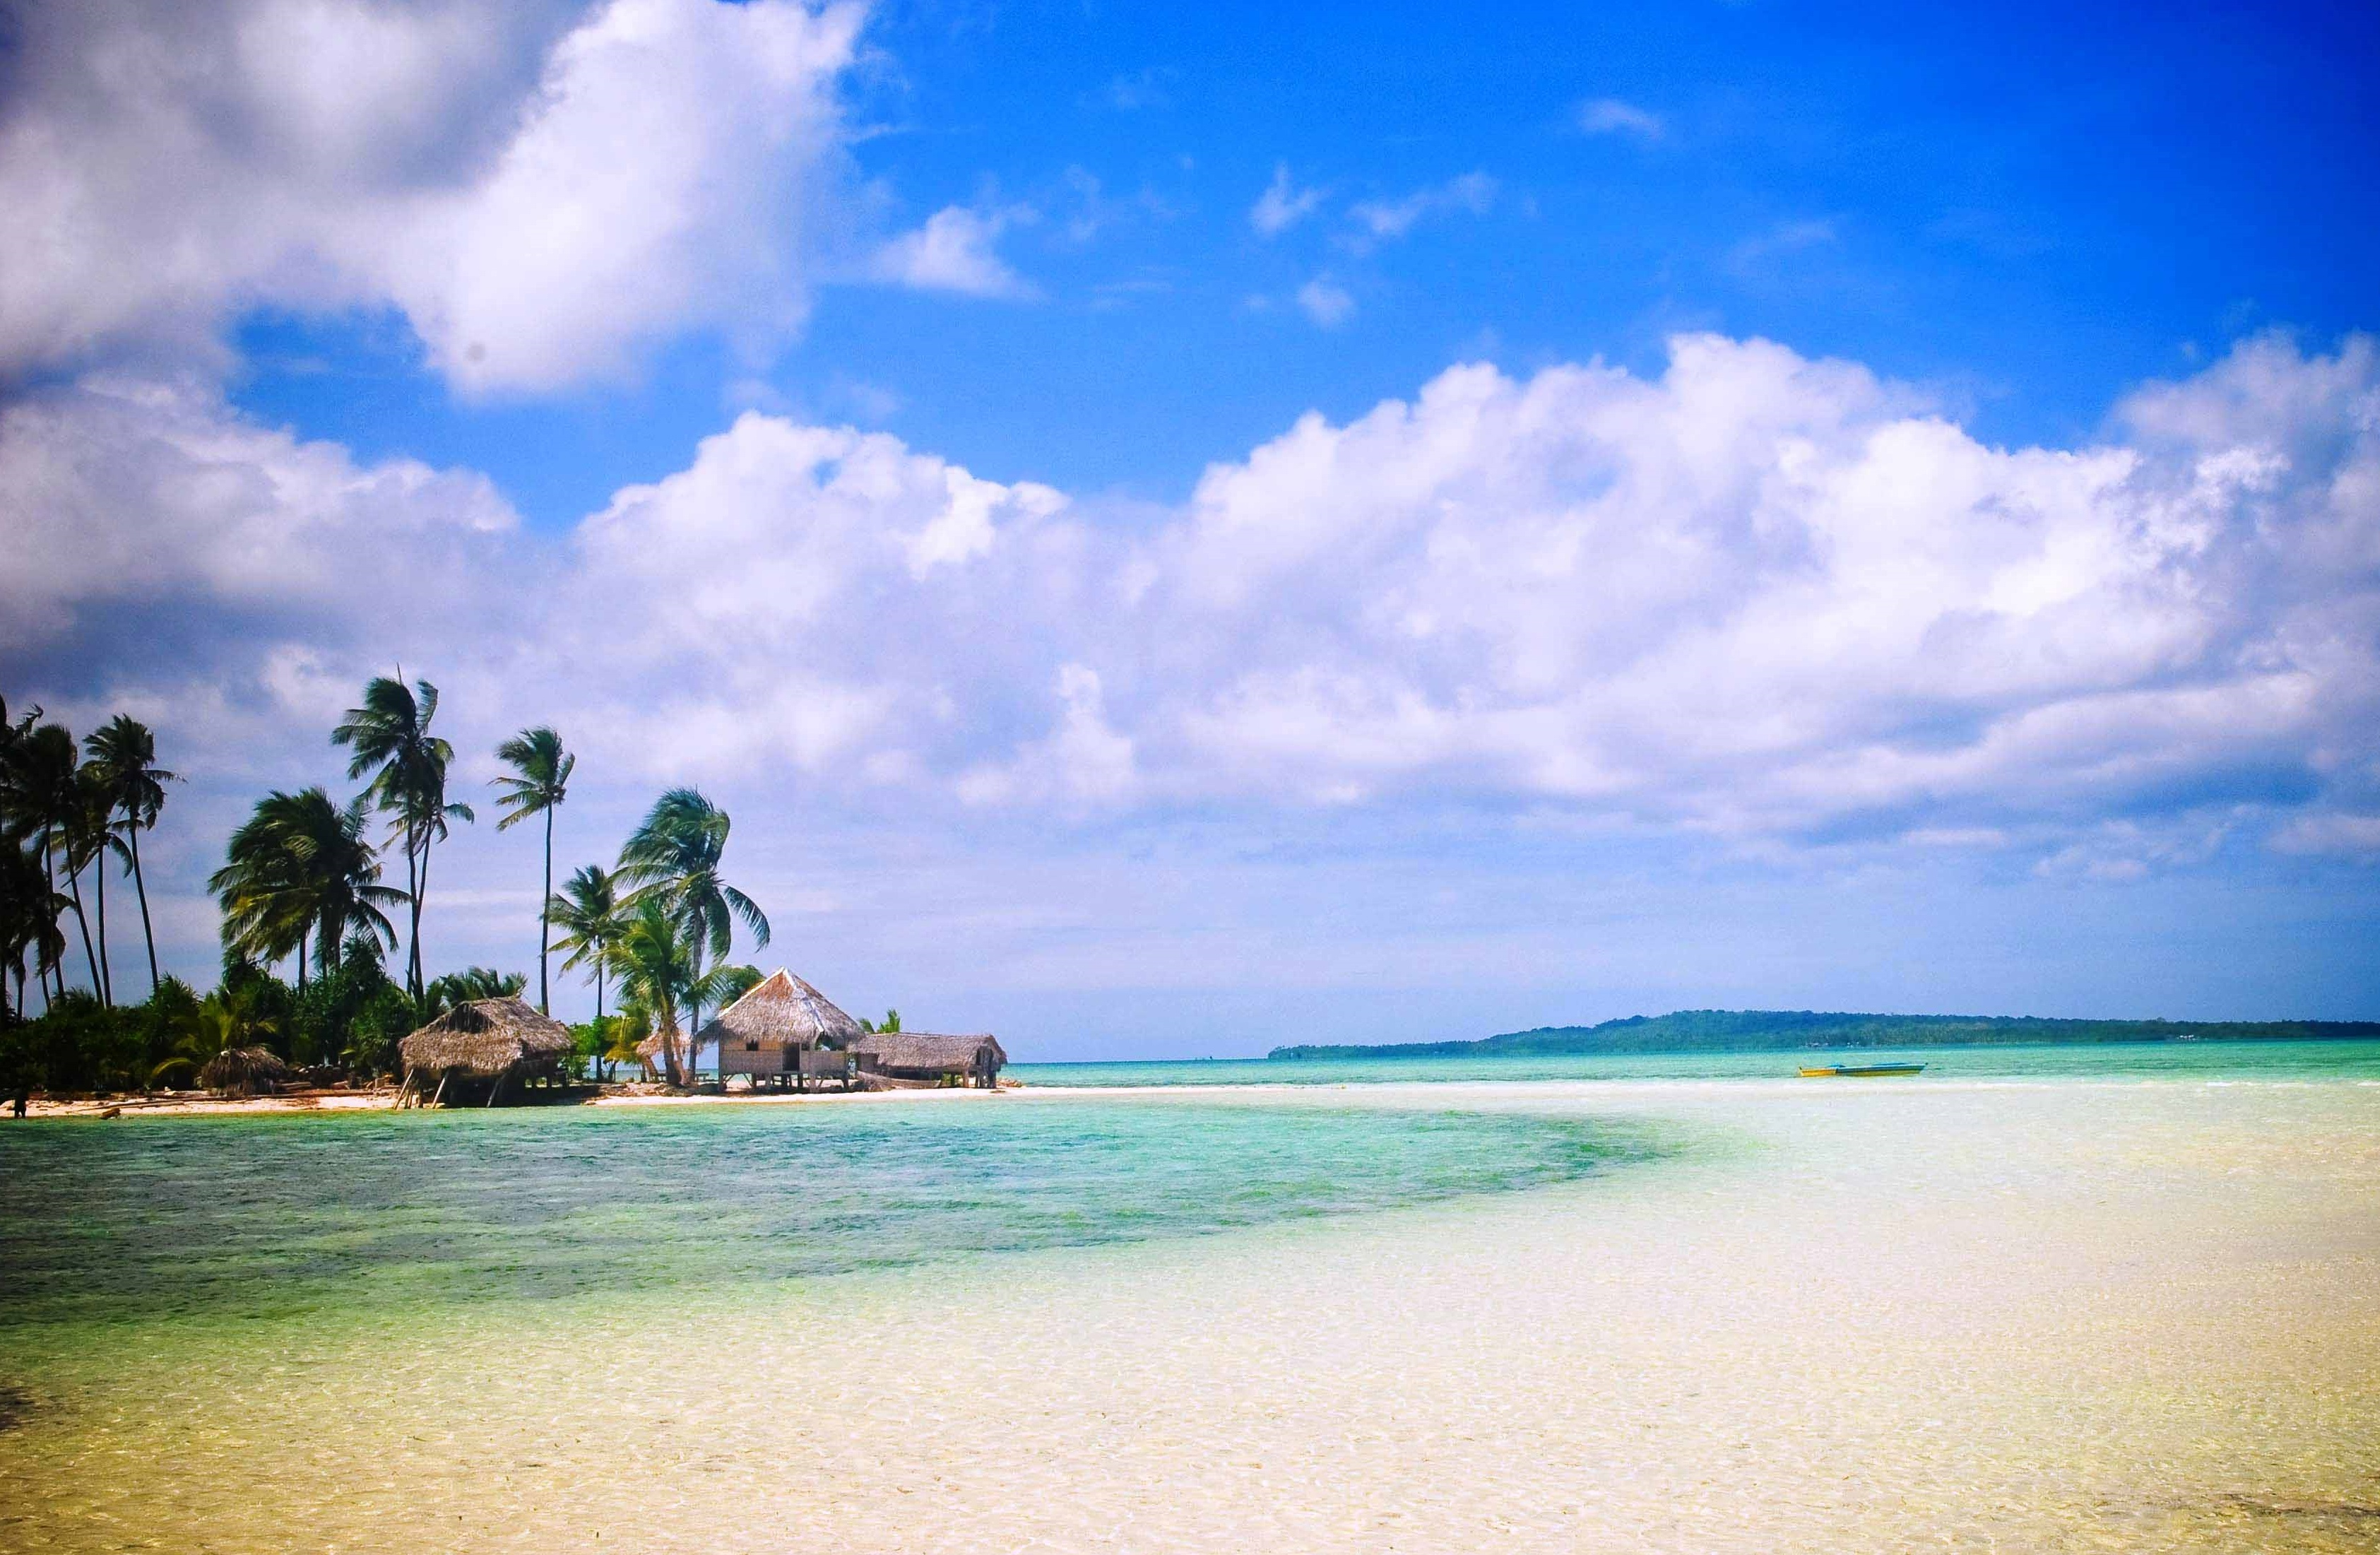 wakatobi national park in southeast sulawesi